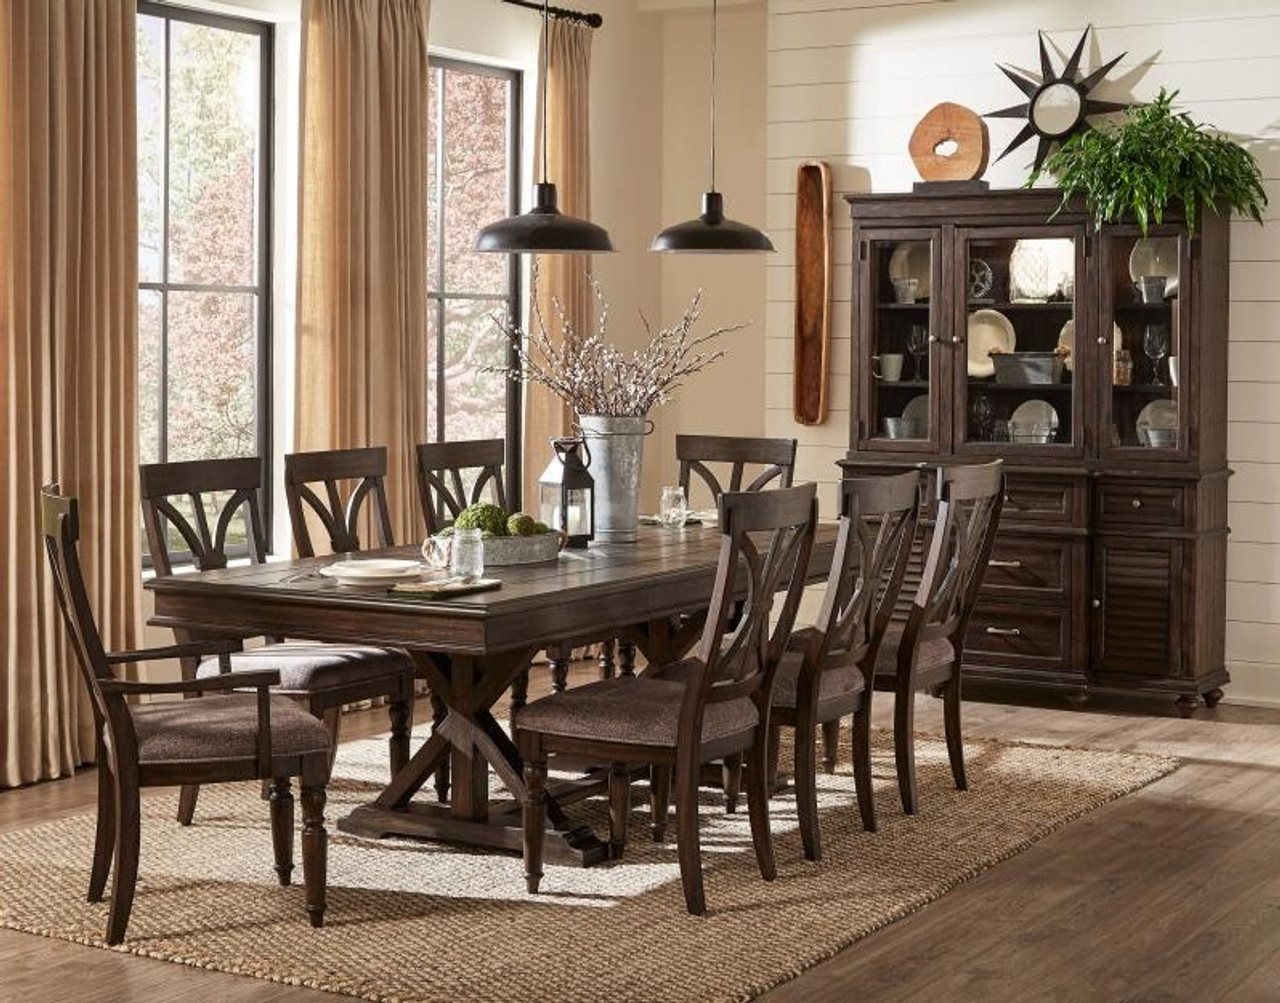 Cardano 5 Piece Dining Set